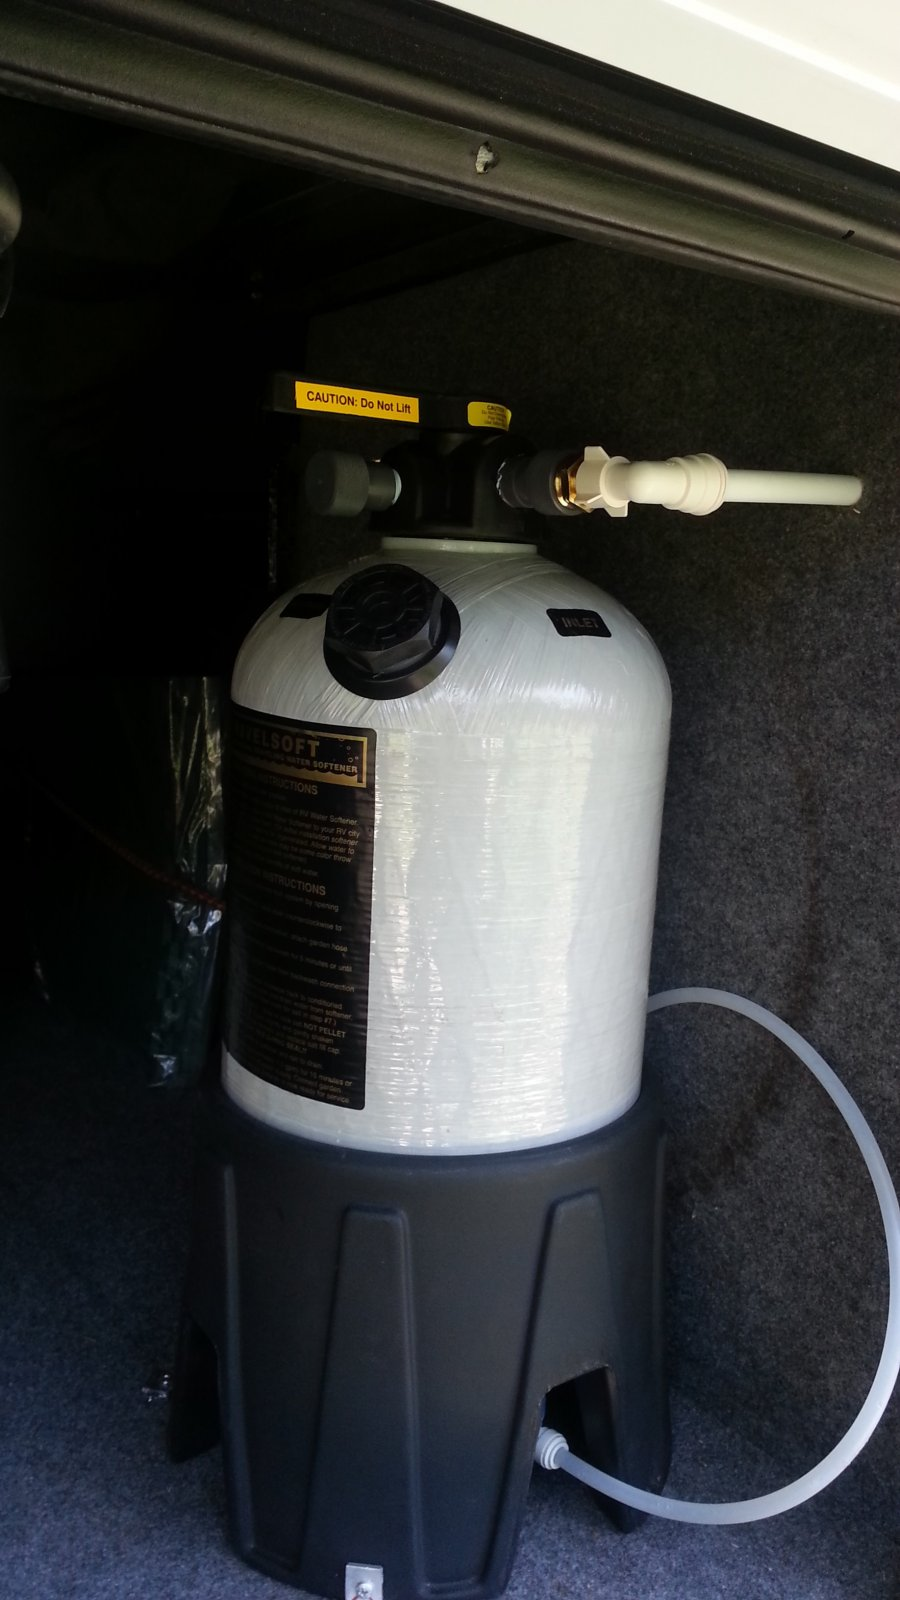 Click image for larger version  Name:water softener.jpg Views:56 Size:161.7 KB ID:127654